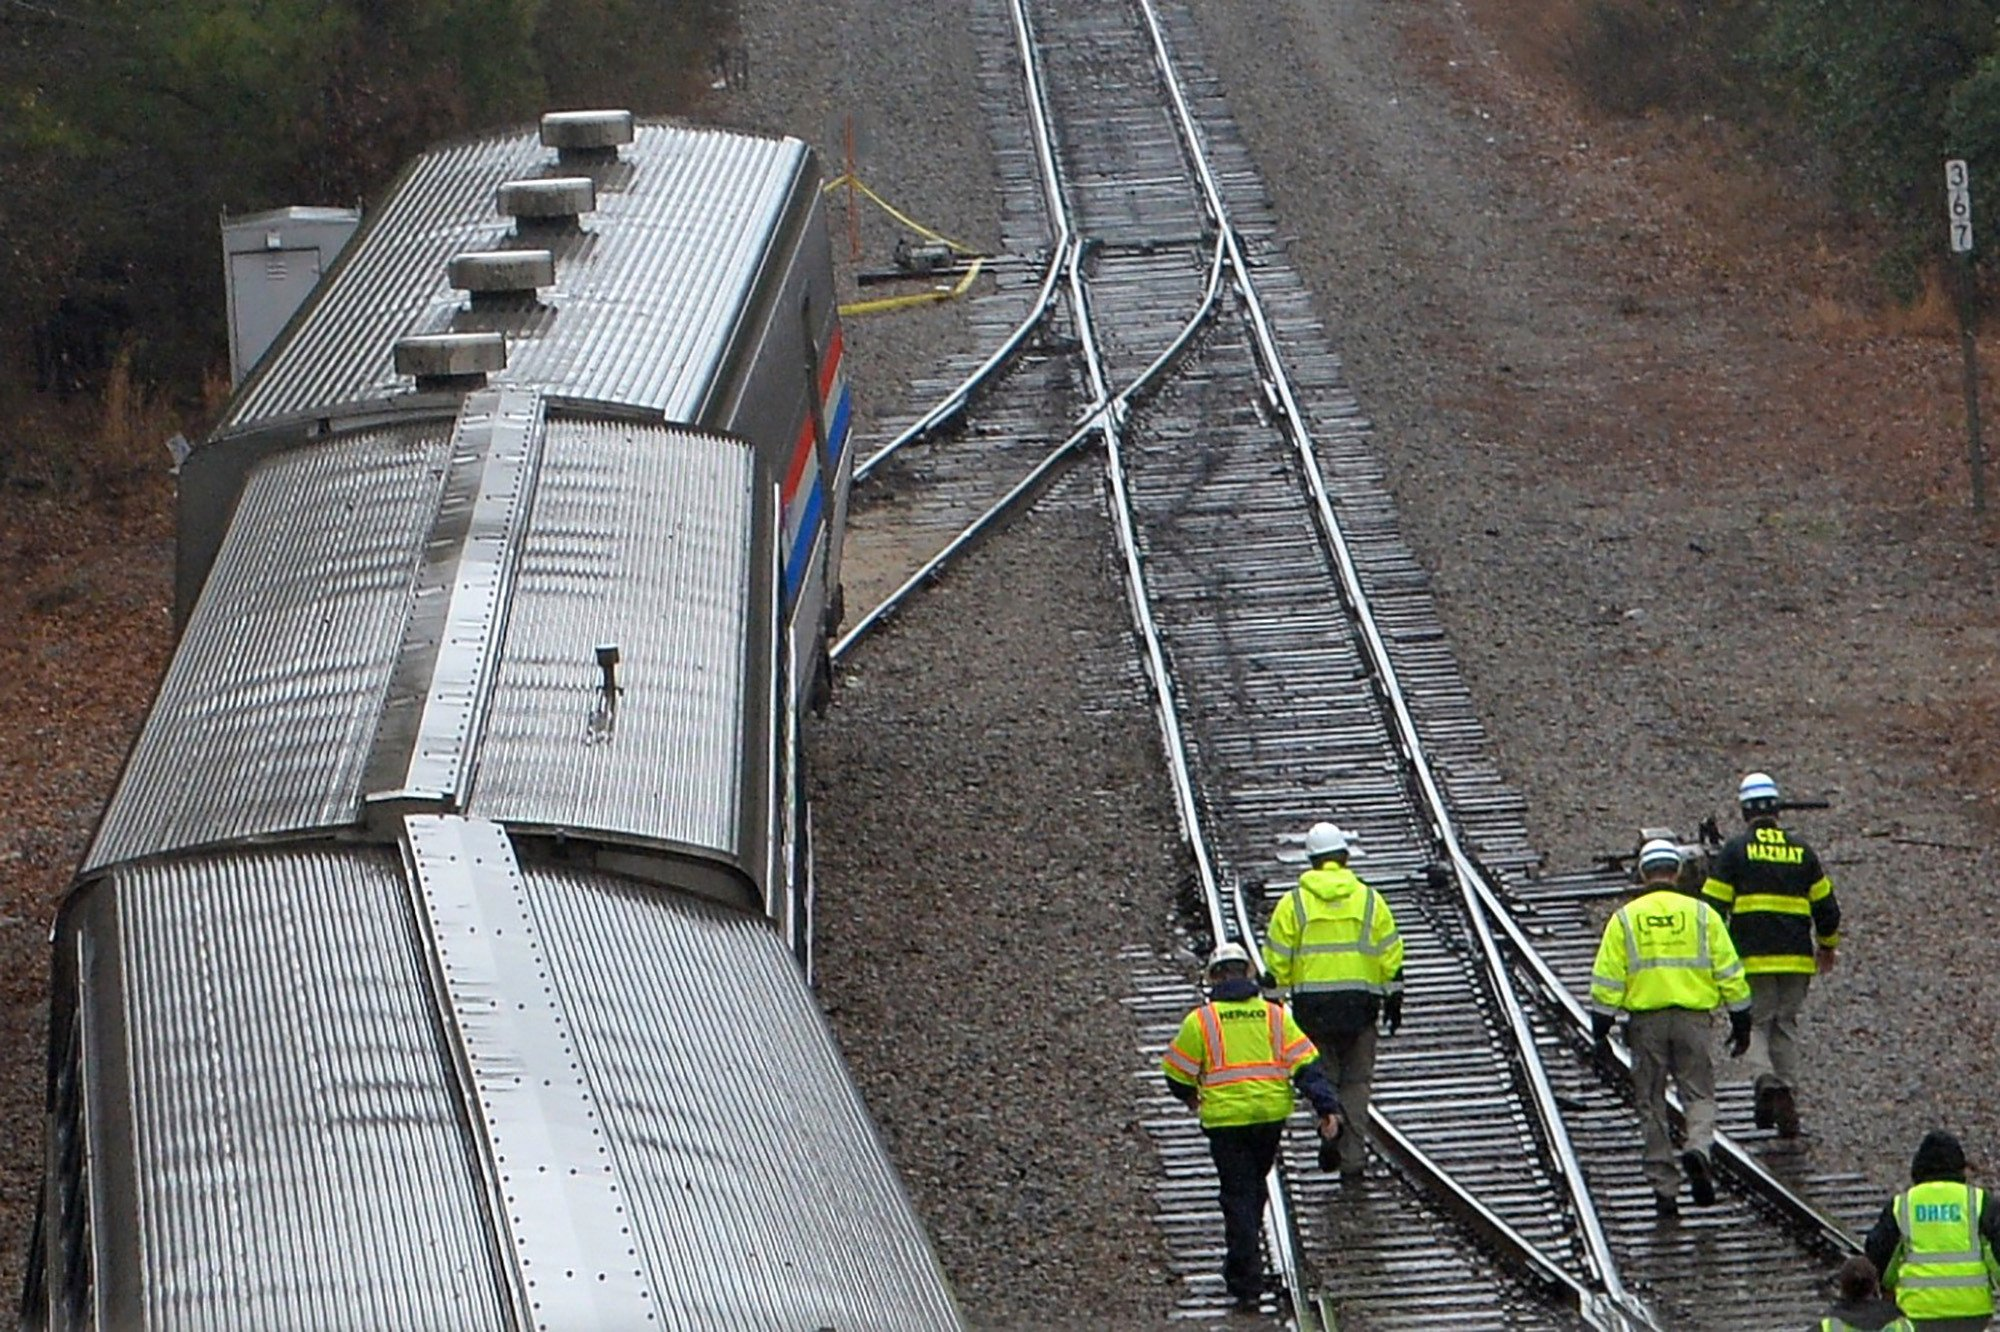 Feds investigating why Amtrak switch was set in wrong position